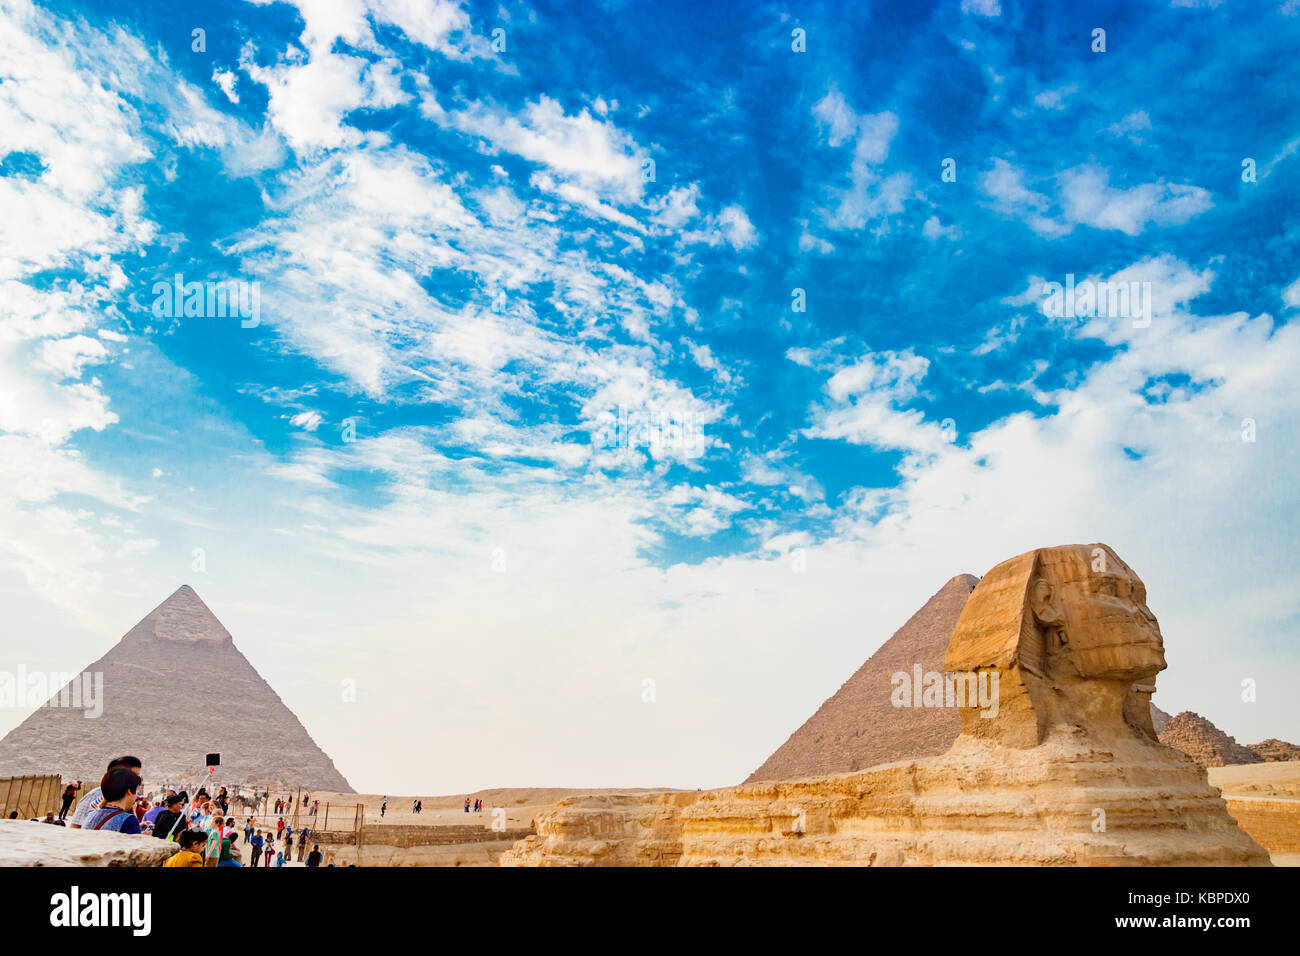 Admiring the sphinx in Cairo, Egypt - Stock Image